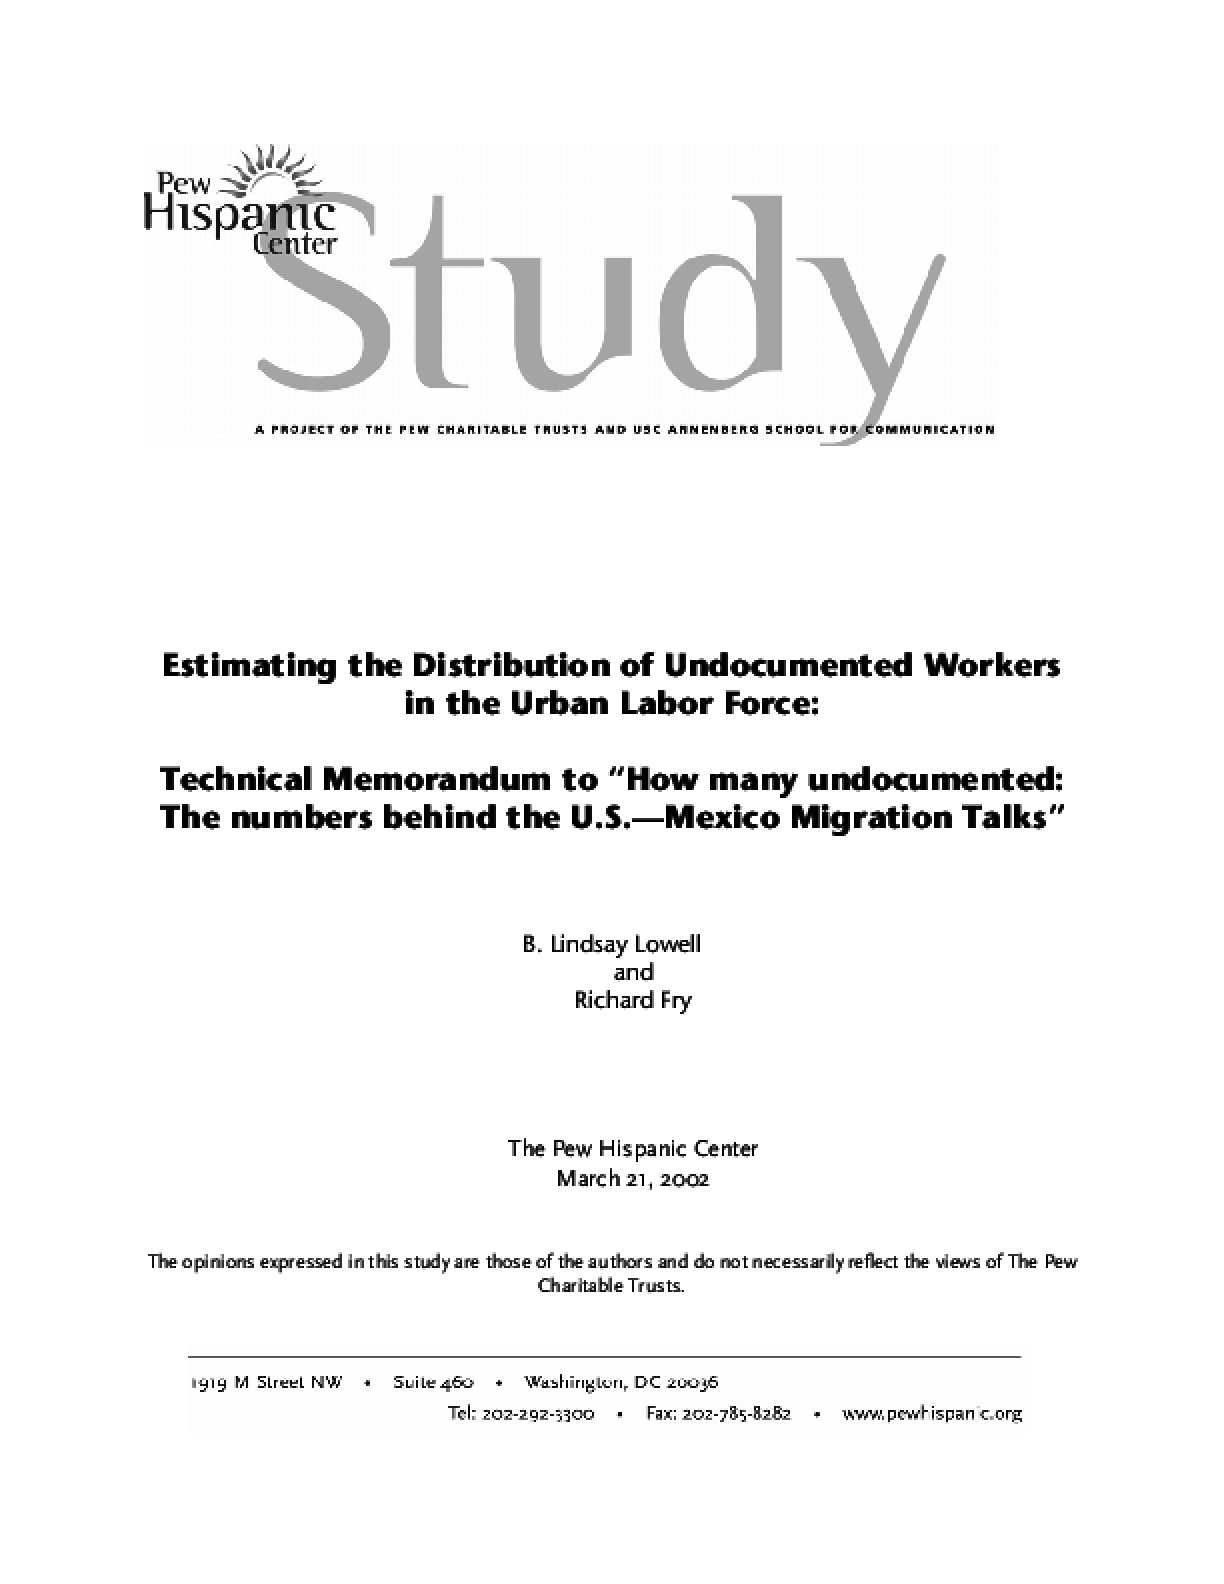 Estimating the Distribution of Undocumented Workers in the Urban Labor Force